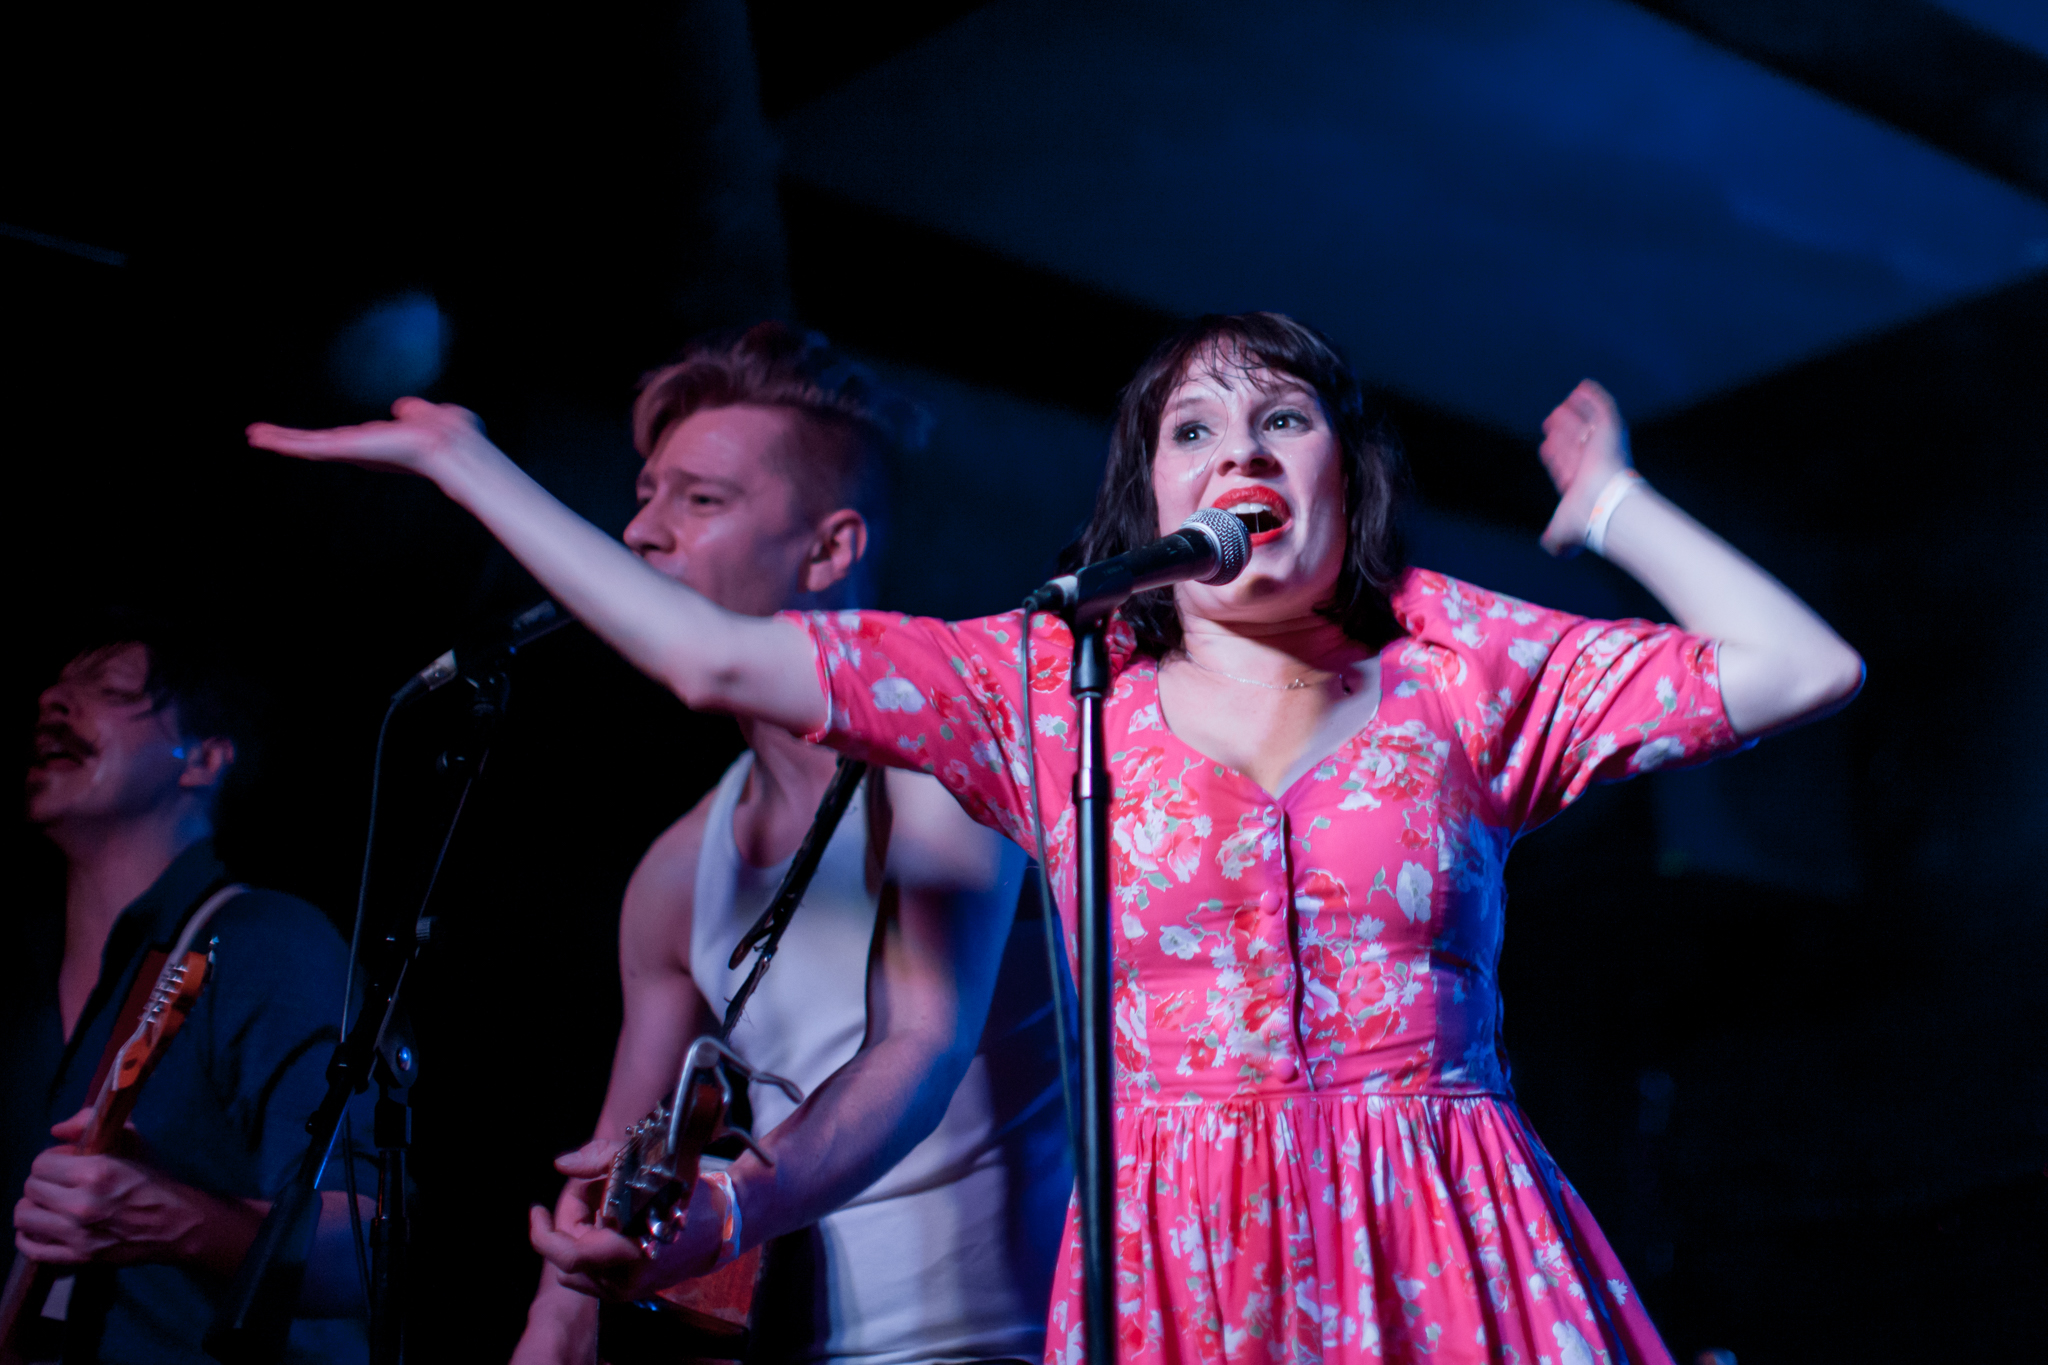 Skinny Lister Performed in San Francisco